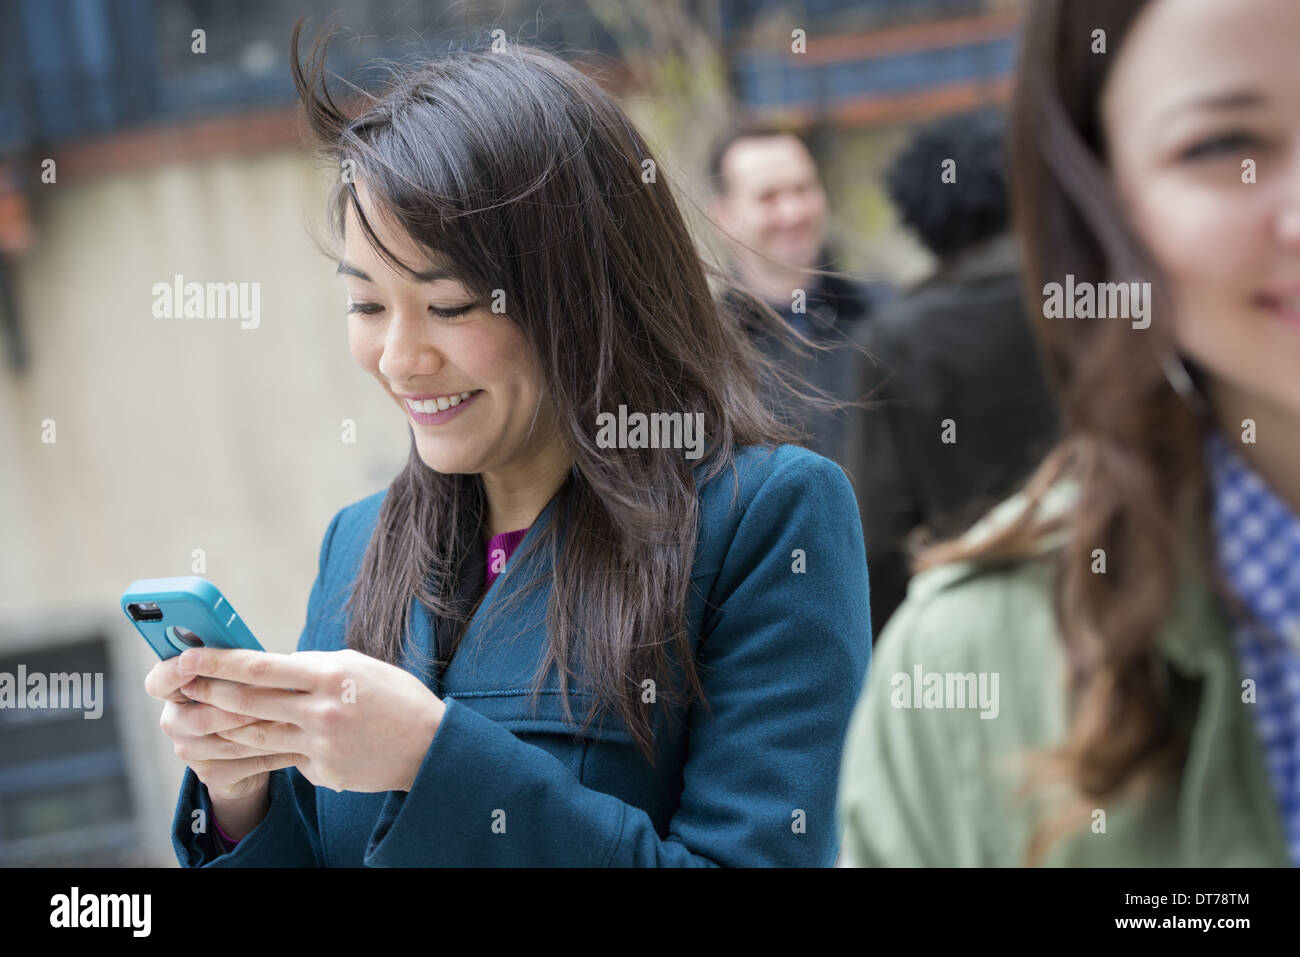 A woman checking her turquoise smart phone, among other people on a city street. - Stock Image